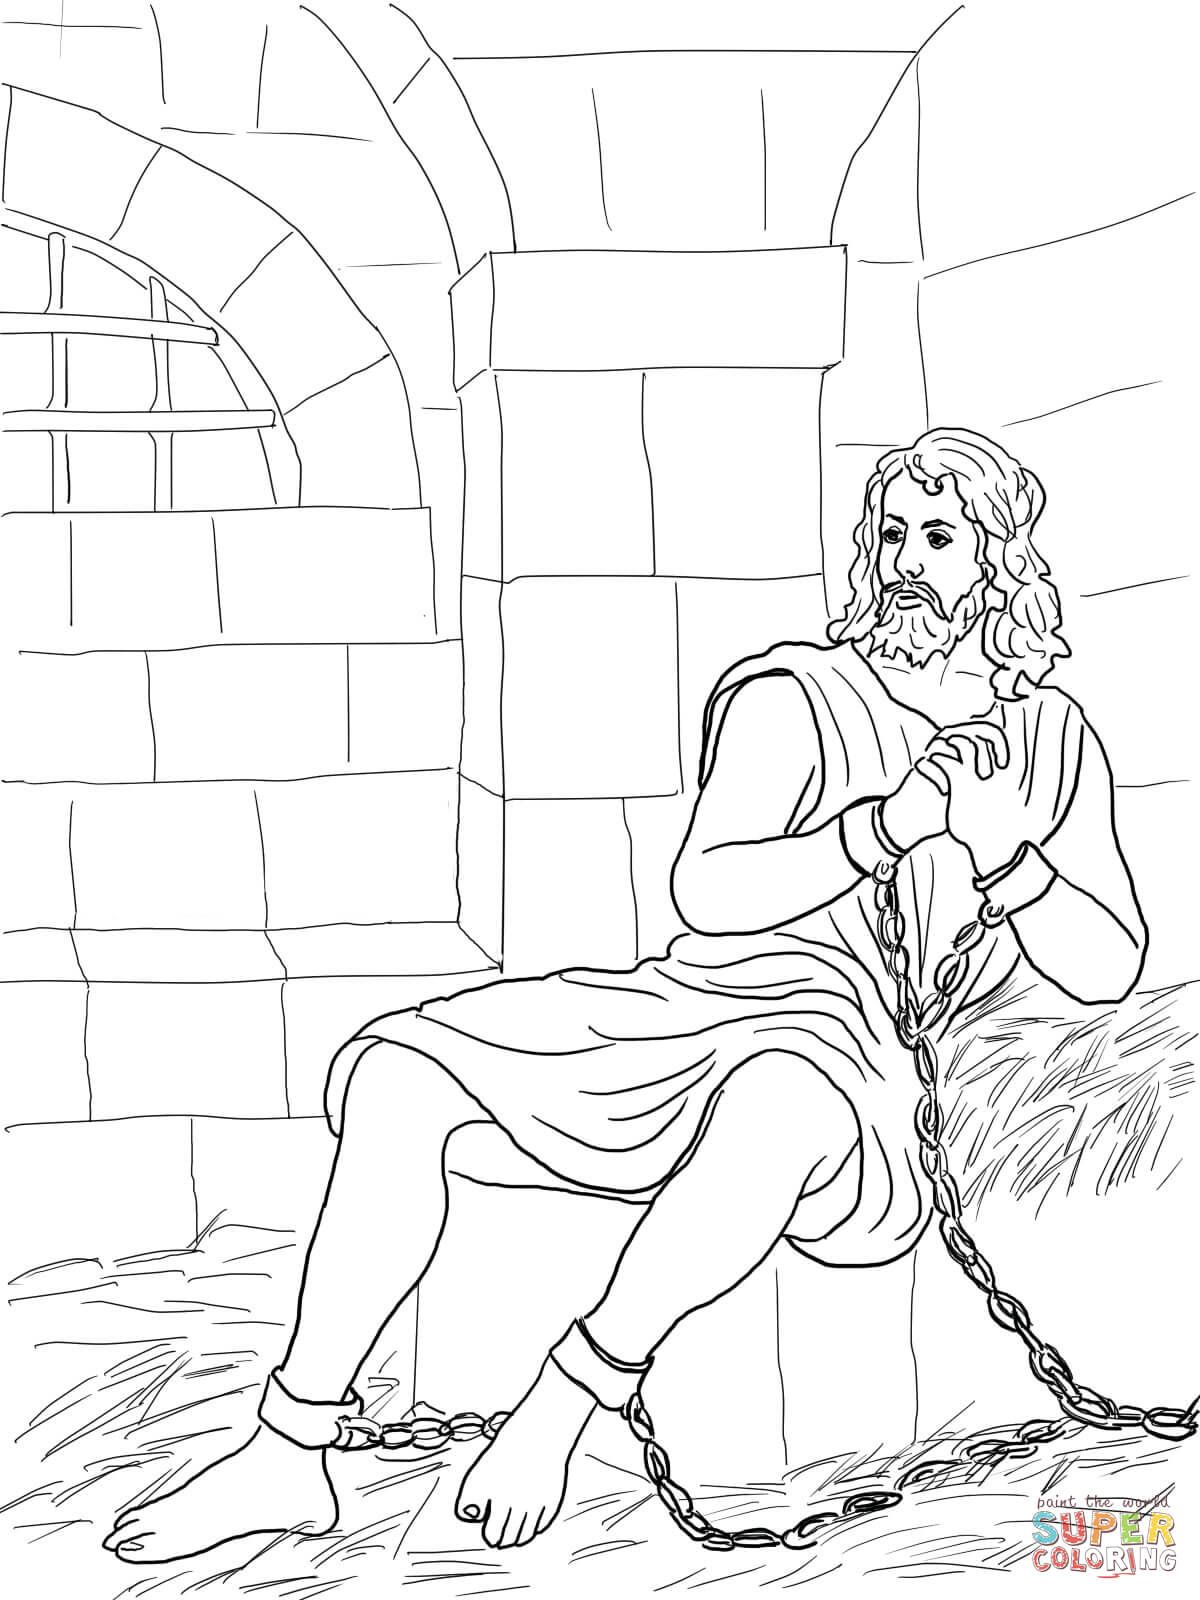 John The Baptist In Prison Coloring Page Free Printable Coloring Pages Printable Coloring Pages Printable Christmas Coloring Pages Nativity Coloring Pages